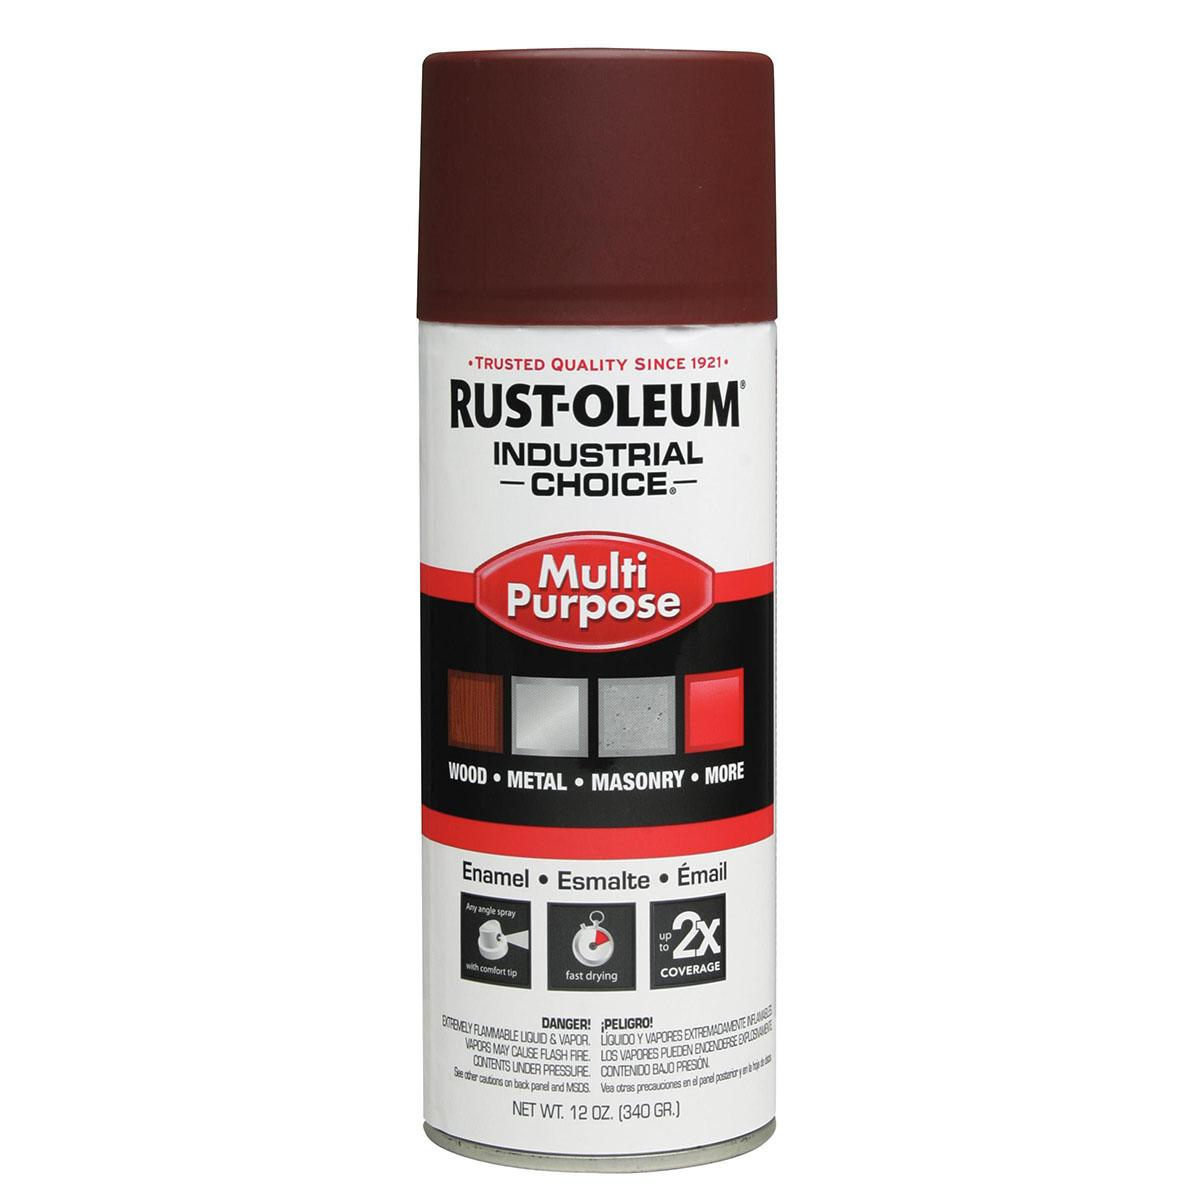 Rust-Oleum Spray Primer: Red, Flat, 1 hr Dry Time, 12 to 15 sq ft, 12 fl oz Container Size